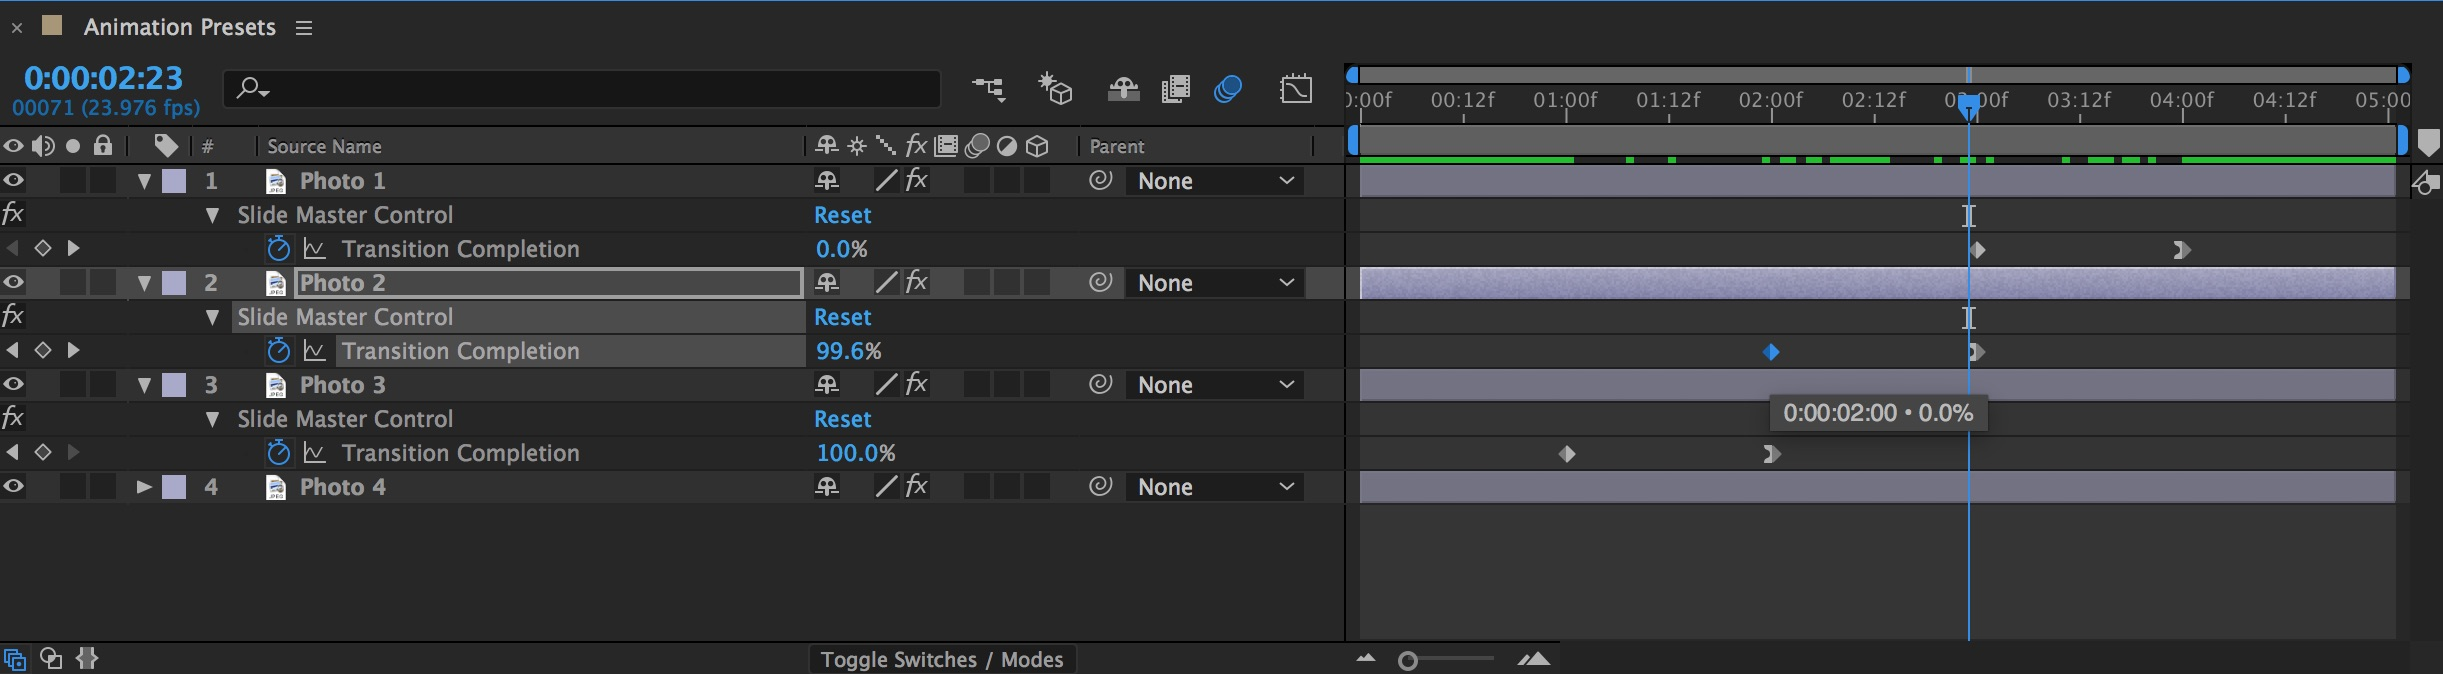 How to Apply Animation Presets in Adobe After Effects — Fine Tuning